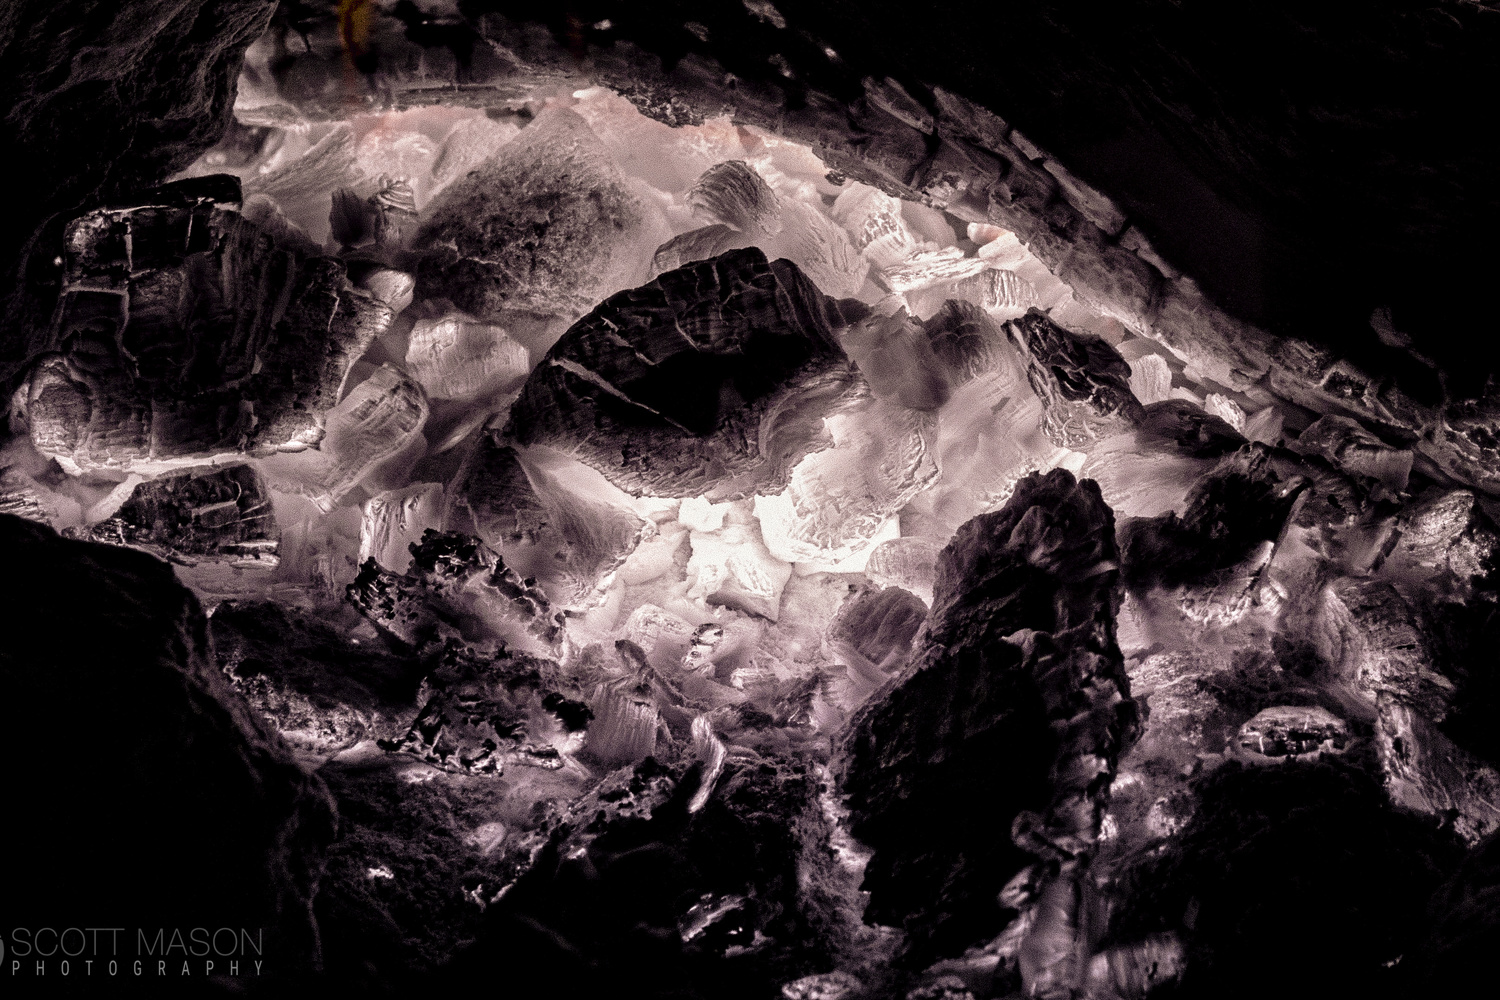 glowing coals in a campfire, photographed in infrared